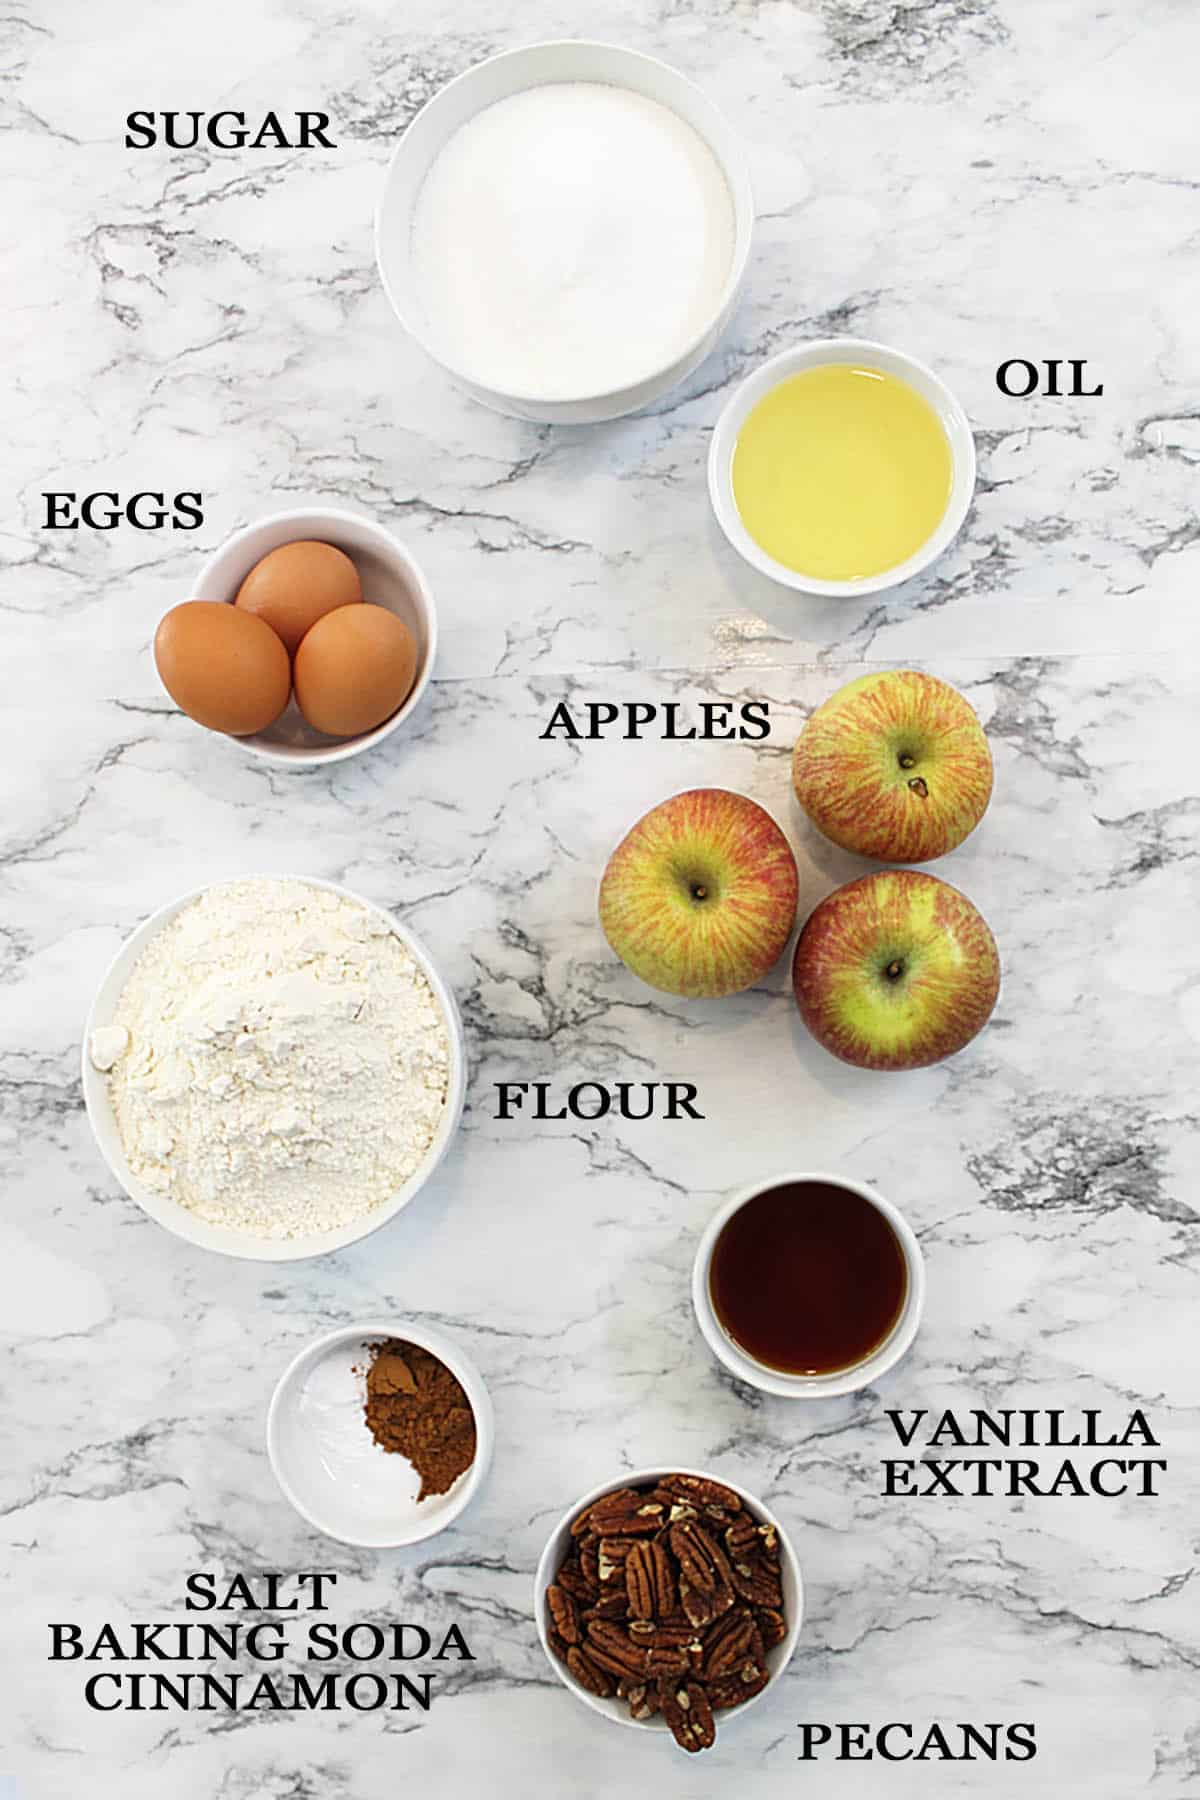 Picture from above of all recipe ingredients.